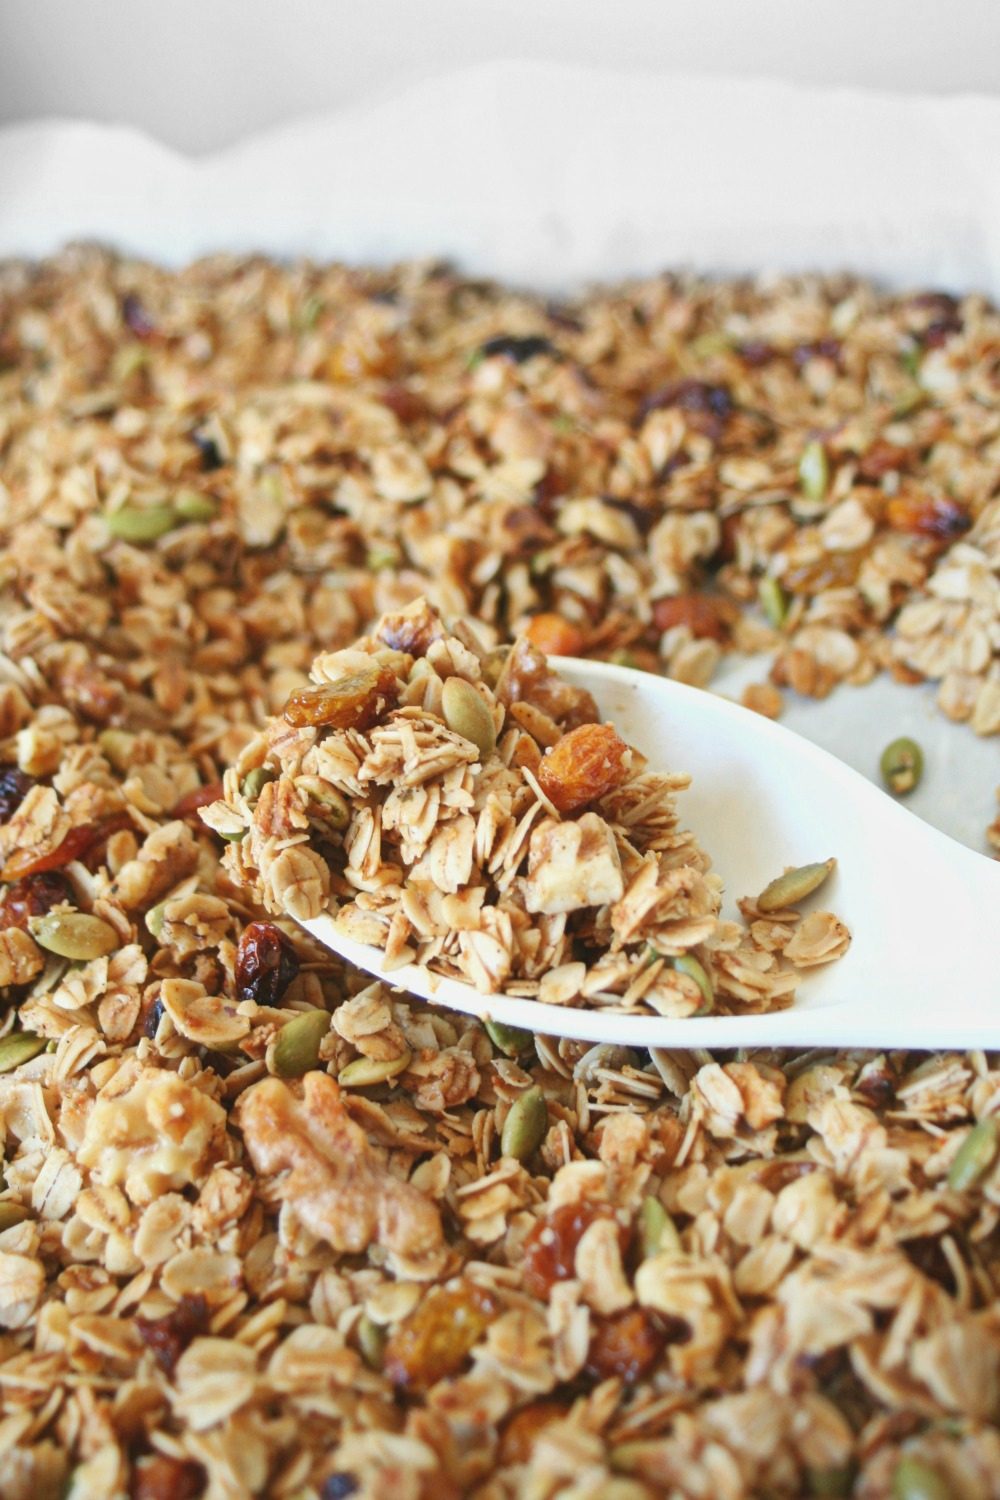 Homemade Granola Tray 4